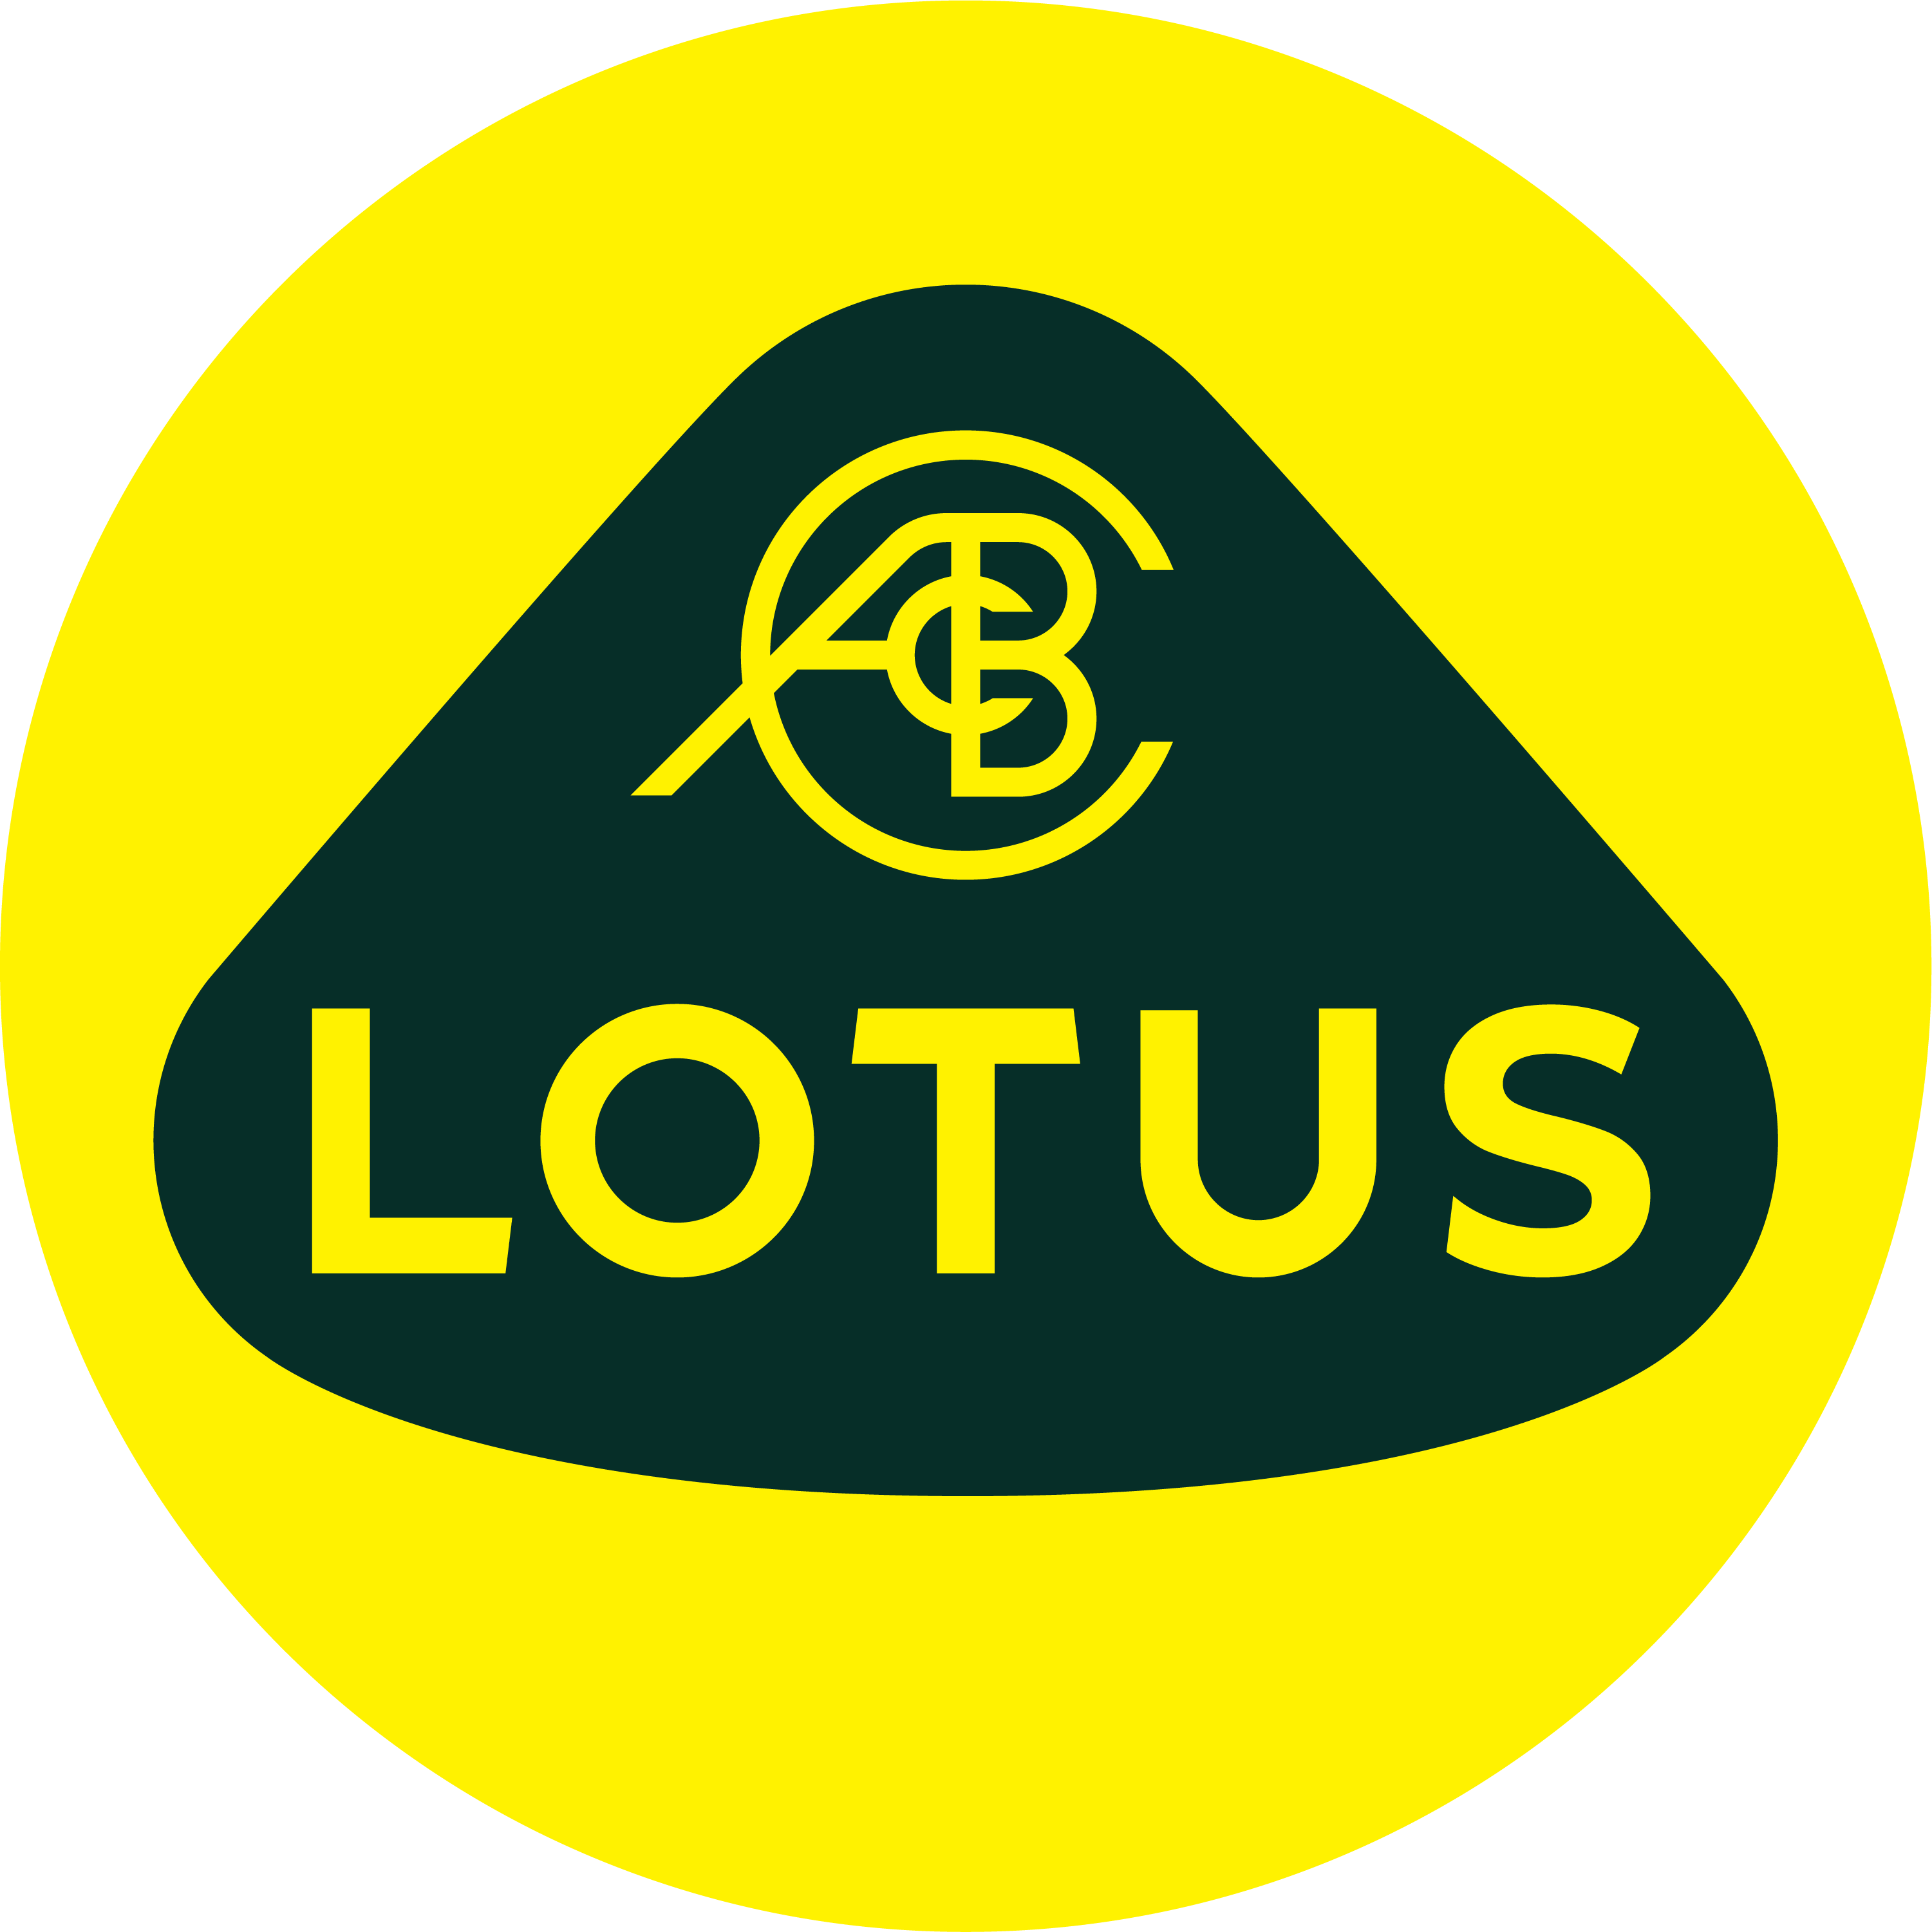 Central Lotus